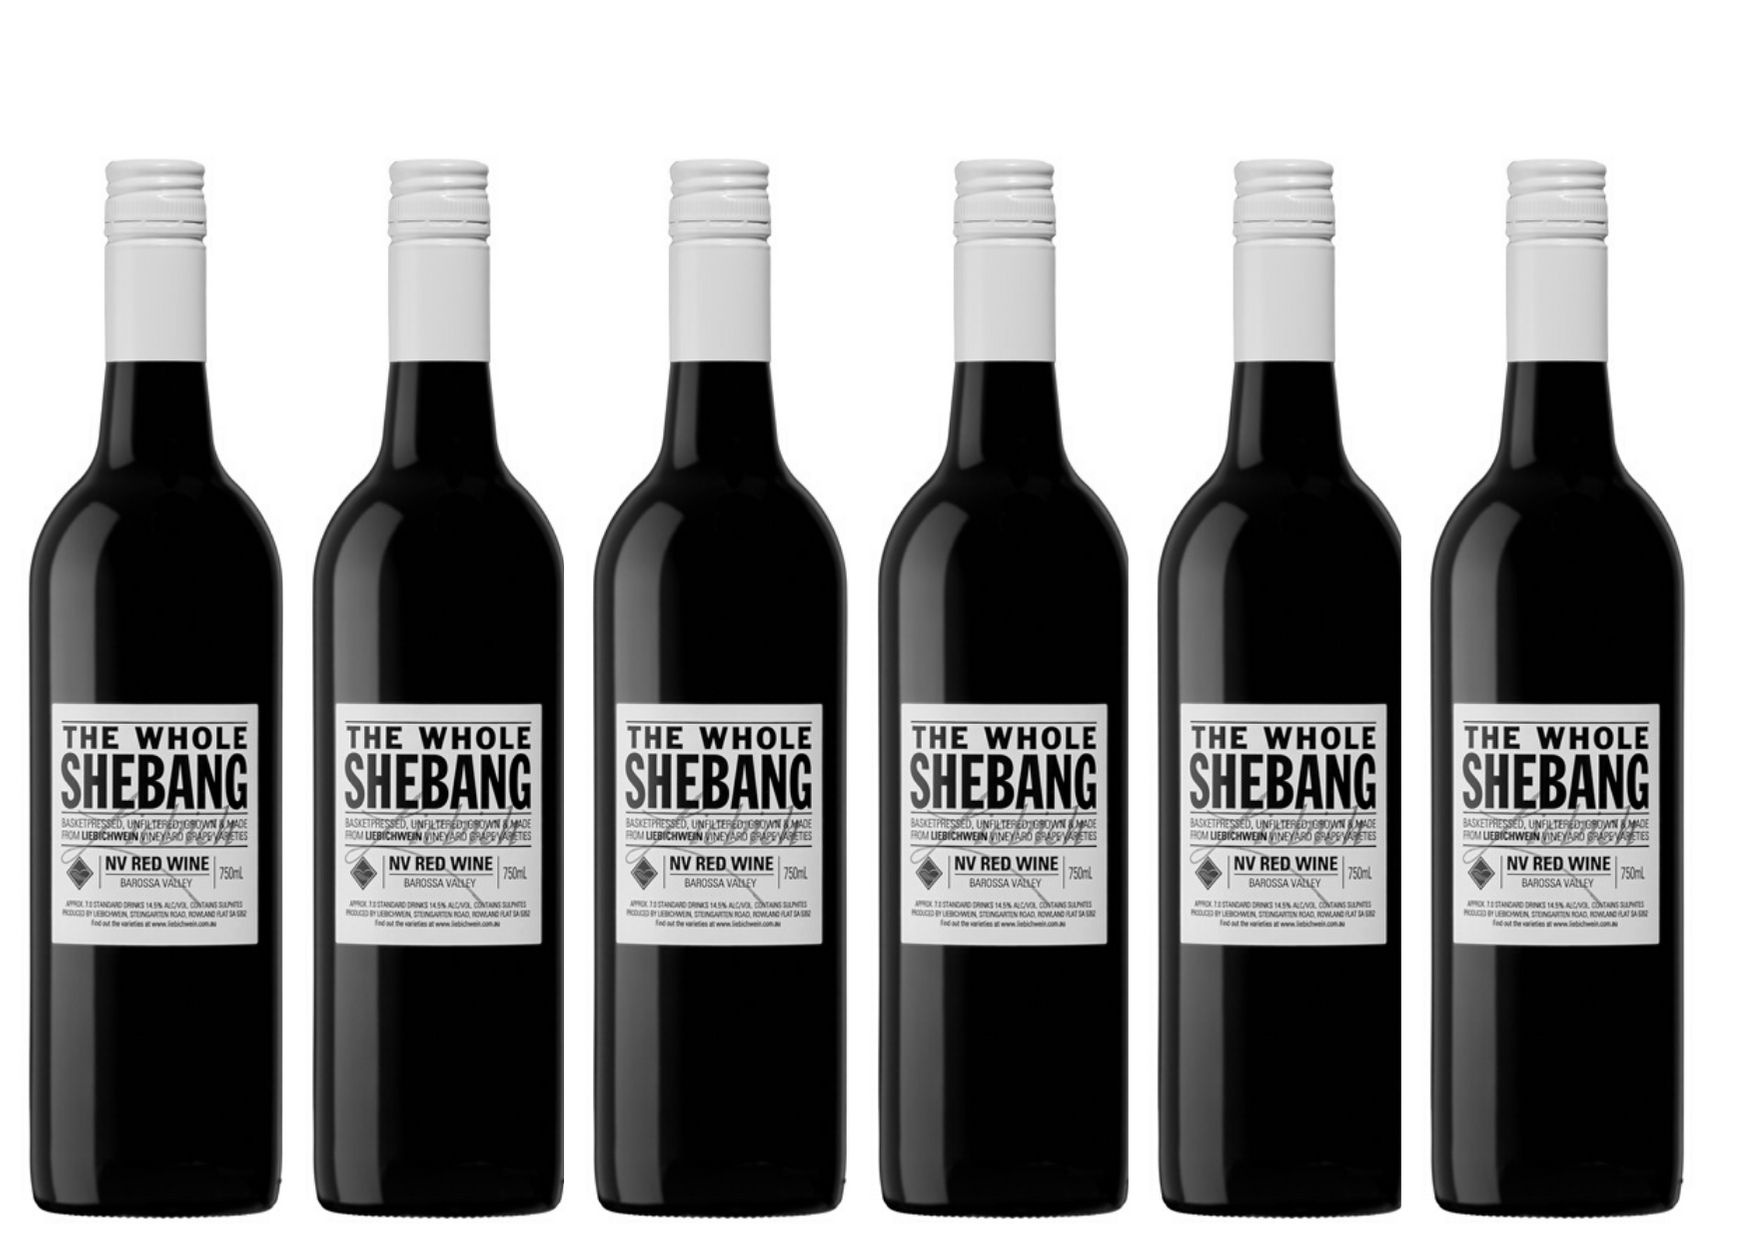 The Whole Shebang 6 bottles transparent background ls